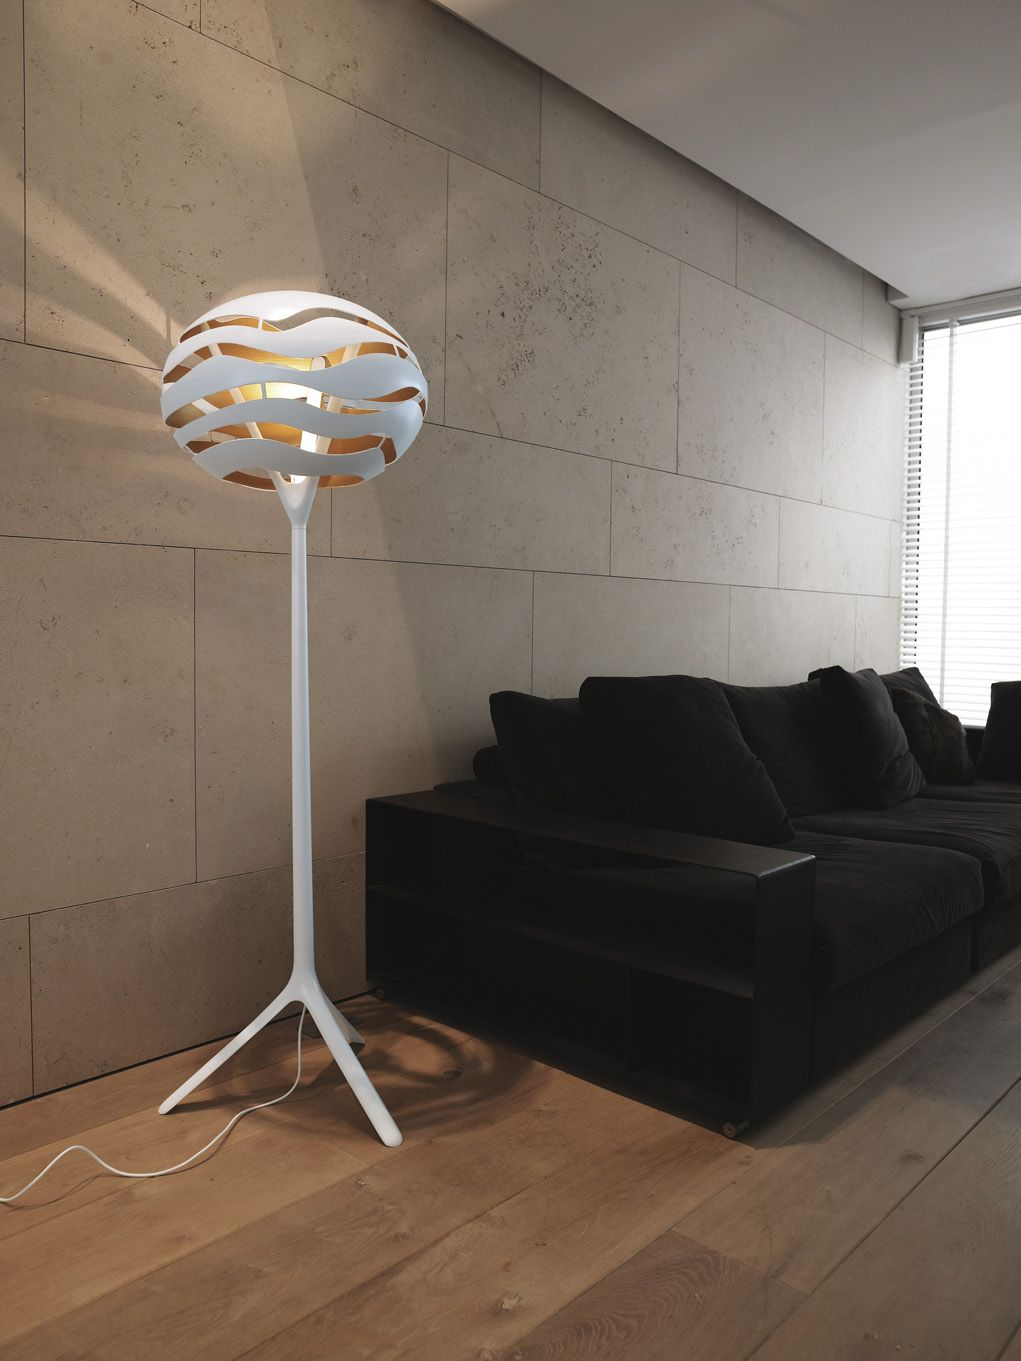 tree series floor lamp by werner aisslinger for lighting lamparas lighting for home. Black Bedroom Furniture Sets. Home Design Ideas